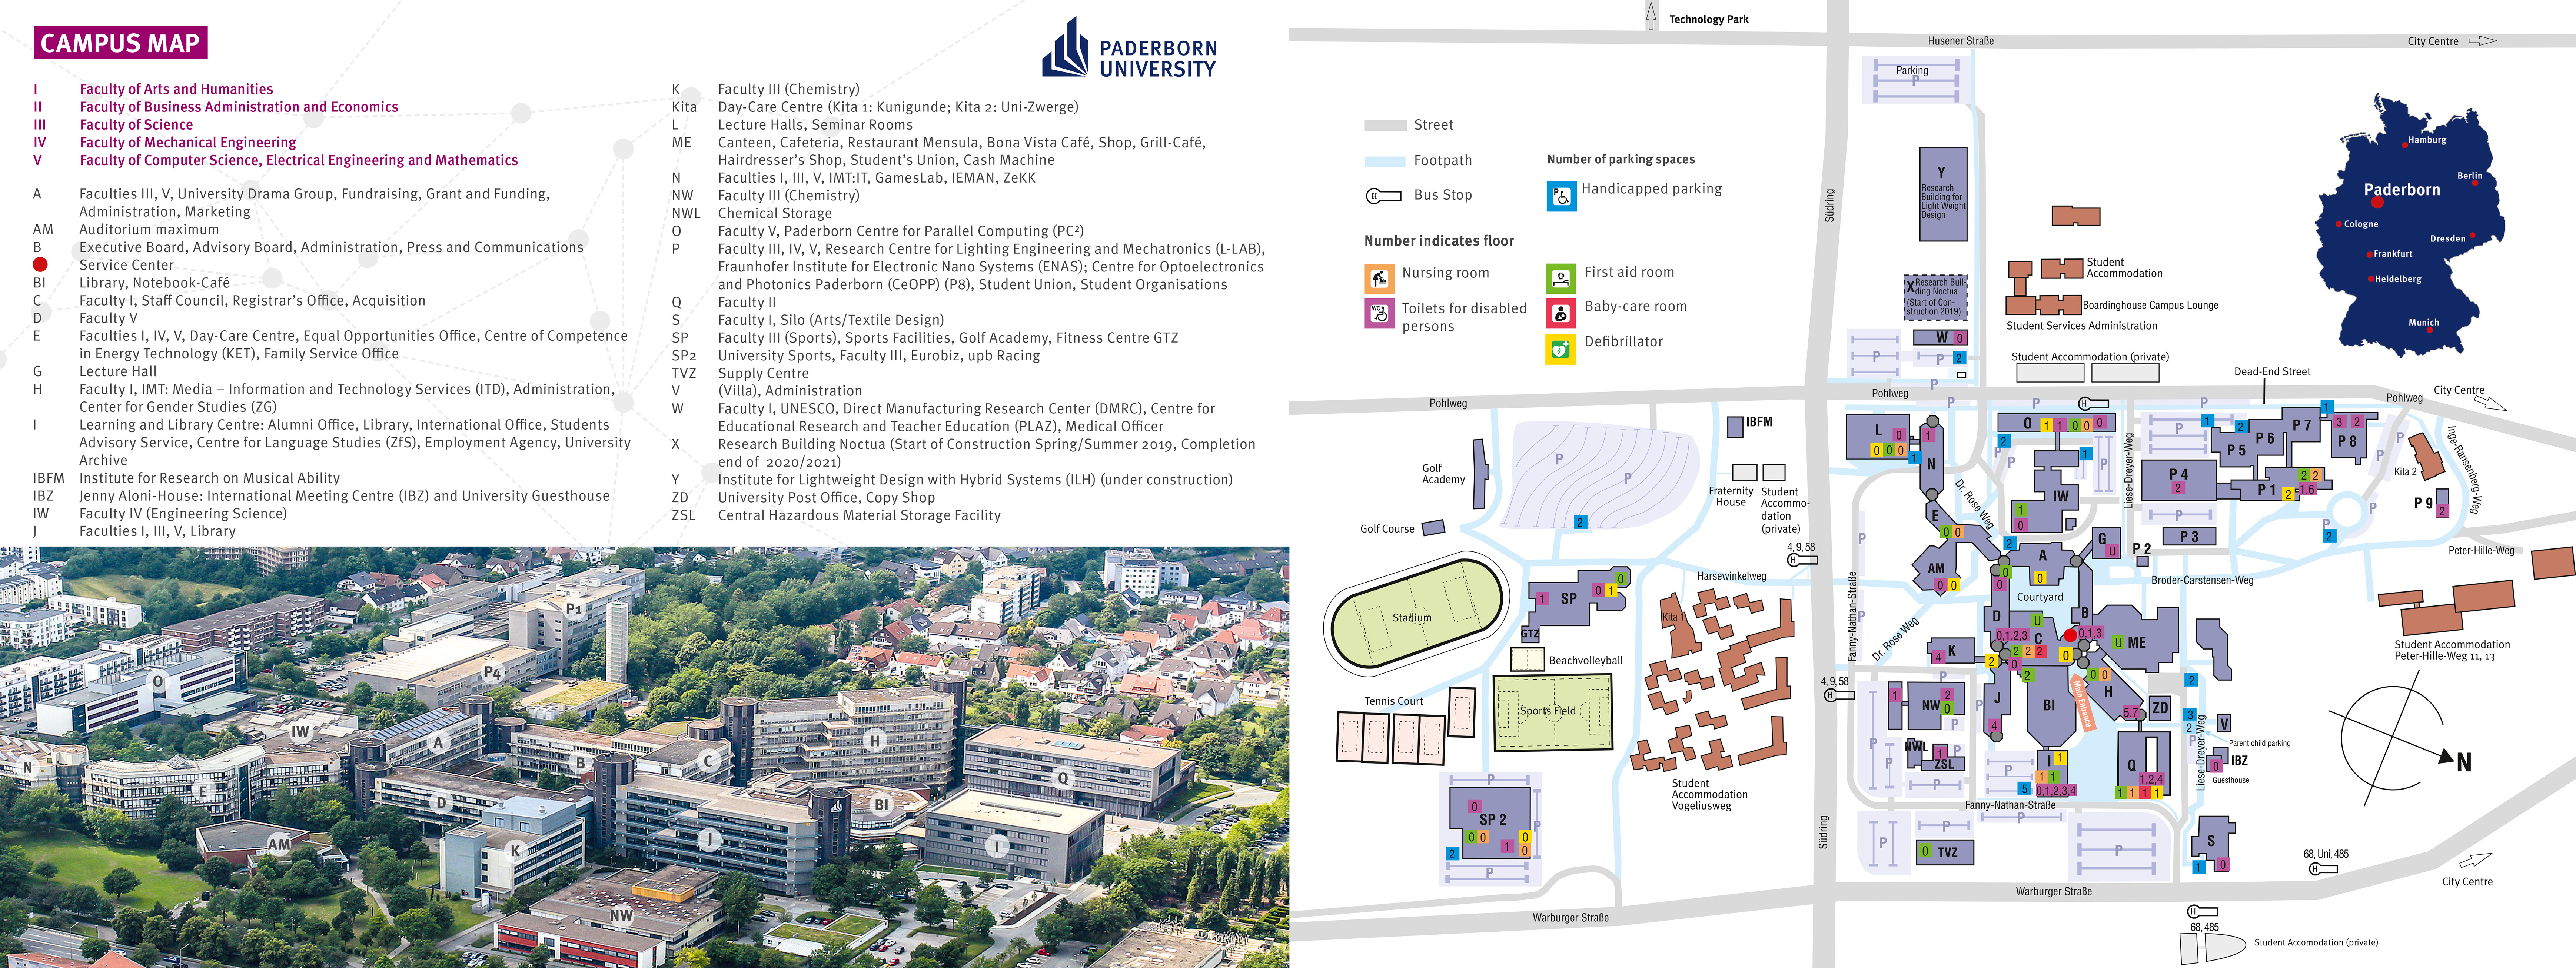 Universität Paderborn - How to get here / campus map on